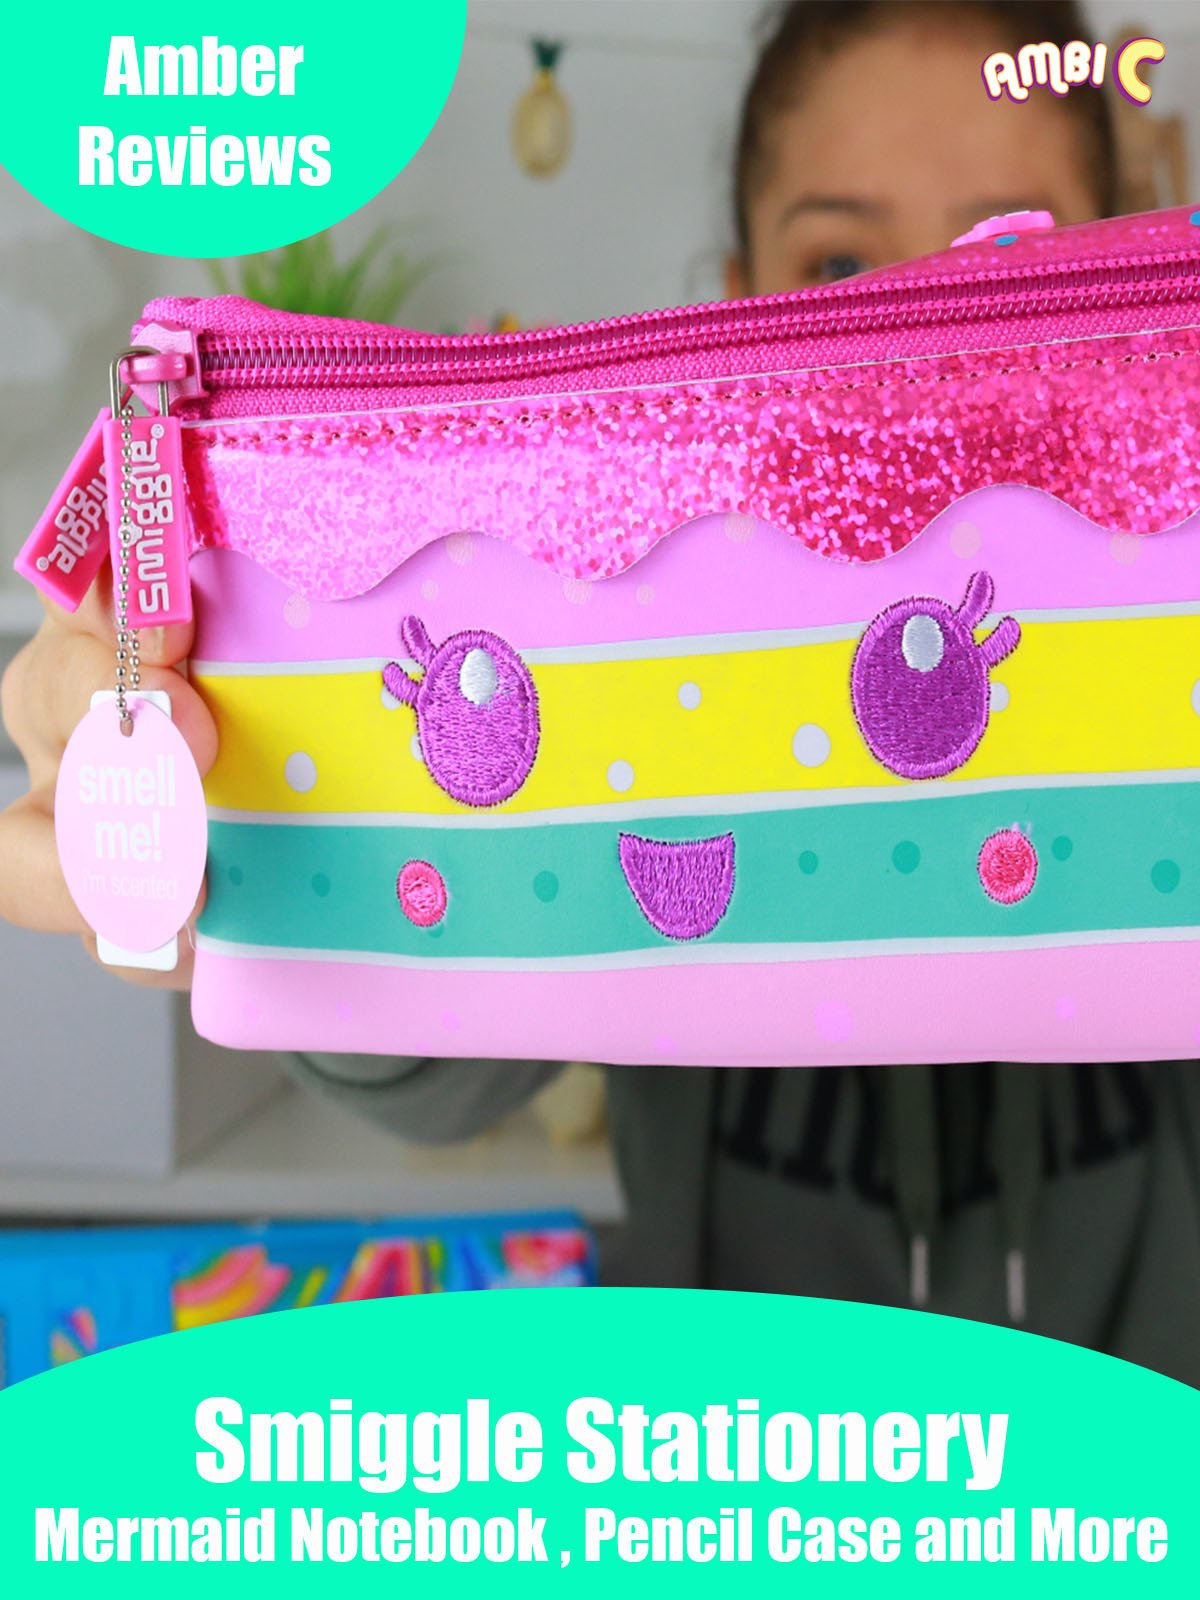 Amber Reviews Smiggle Stationery Mermaid Notebook Pencil Case and More